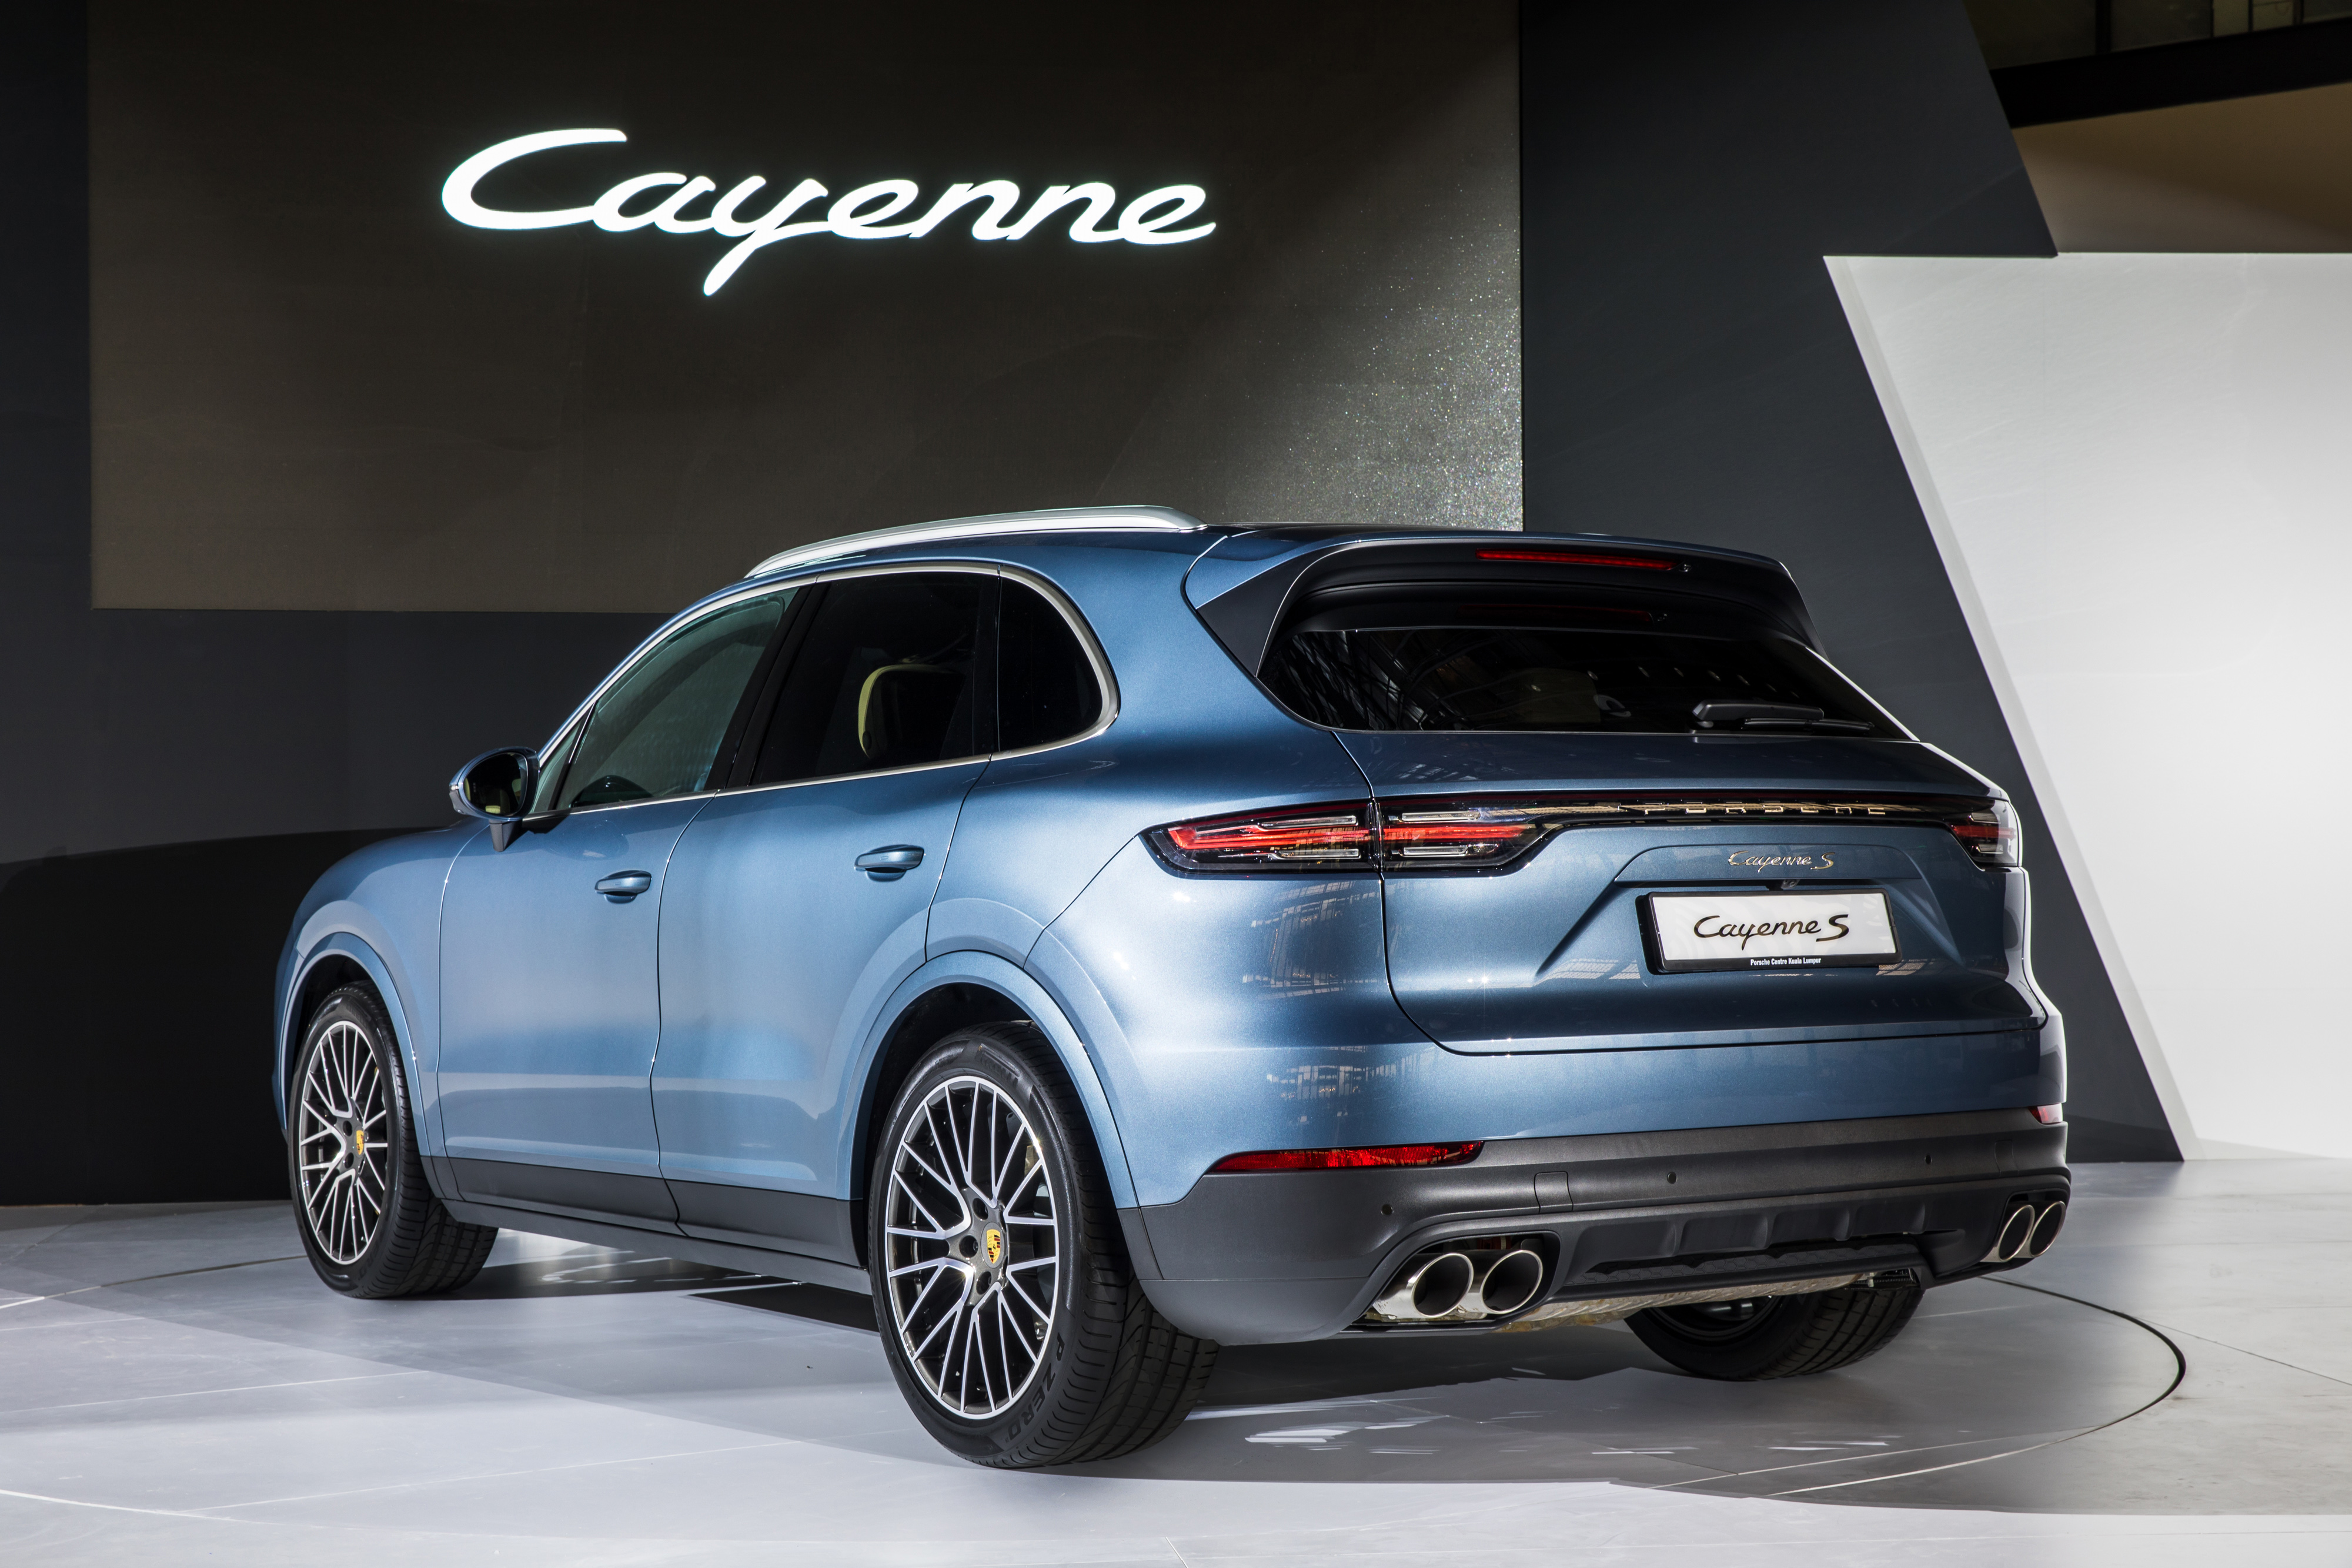 2018 porsche cayenne officially previewed in malaysia paul tan image 771109. Black Bedroom Furniture Sets. Home Design Ideas